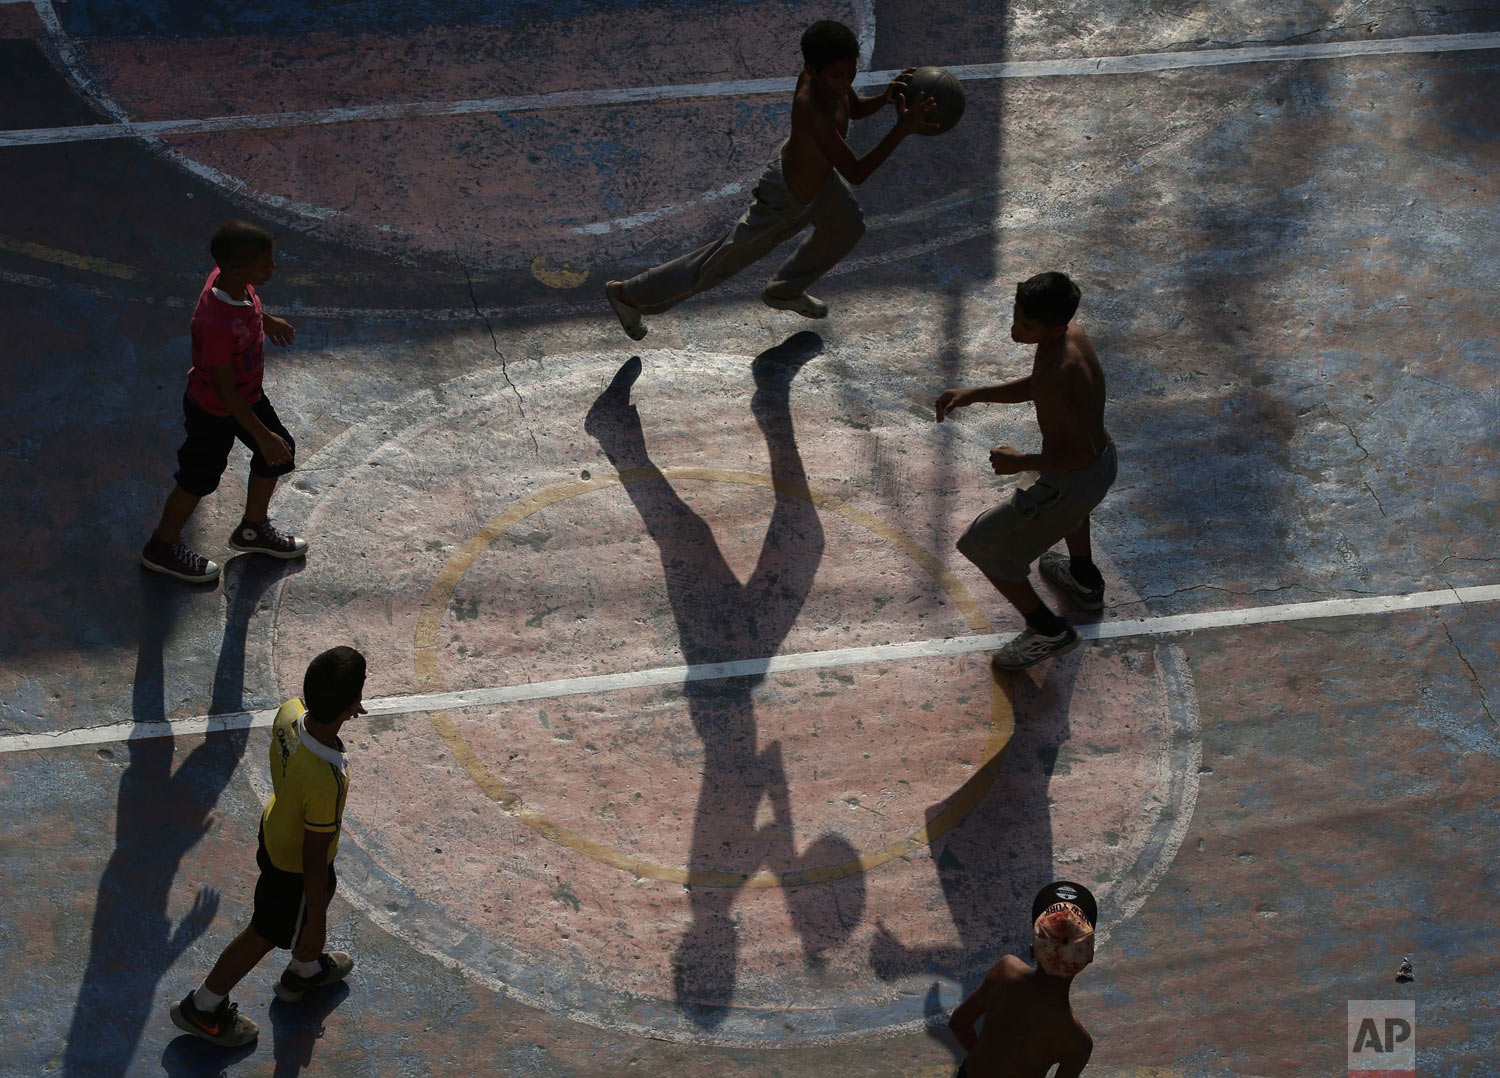 Boys play basketball in the Petare shantytown of Caracas, Venezuela, Thursday, May 16, 2019. (AP Photo/Martin Mejia)